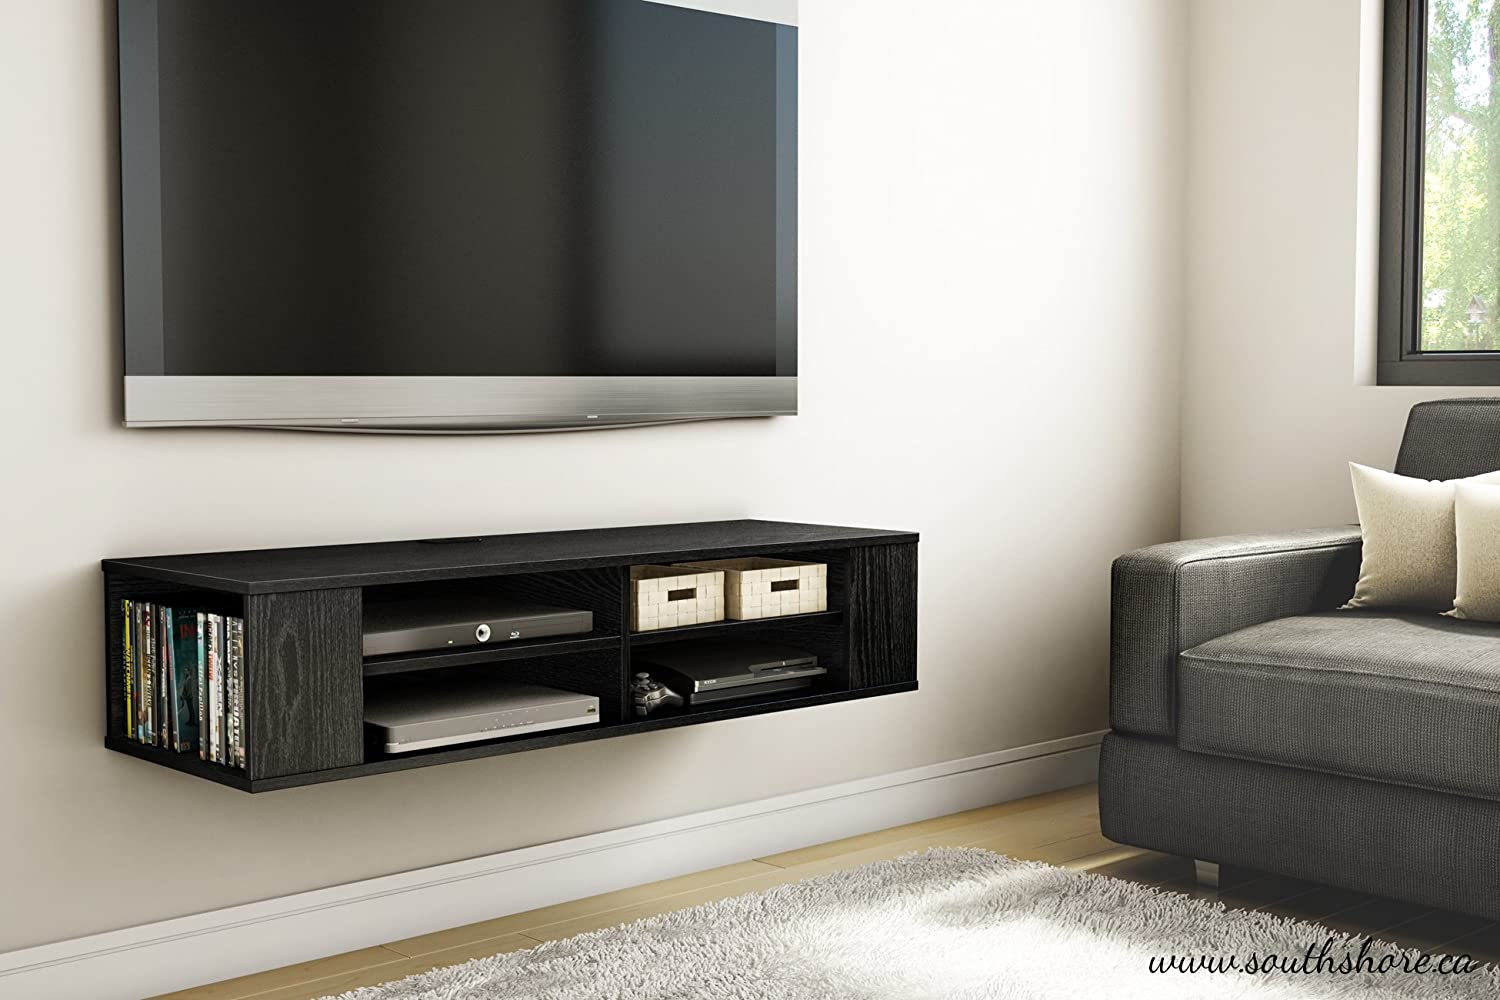 Details About Tv Floating Media Console Wood Wall Mounted Storage Cabinet Stand Modern Ps4 Ps3